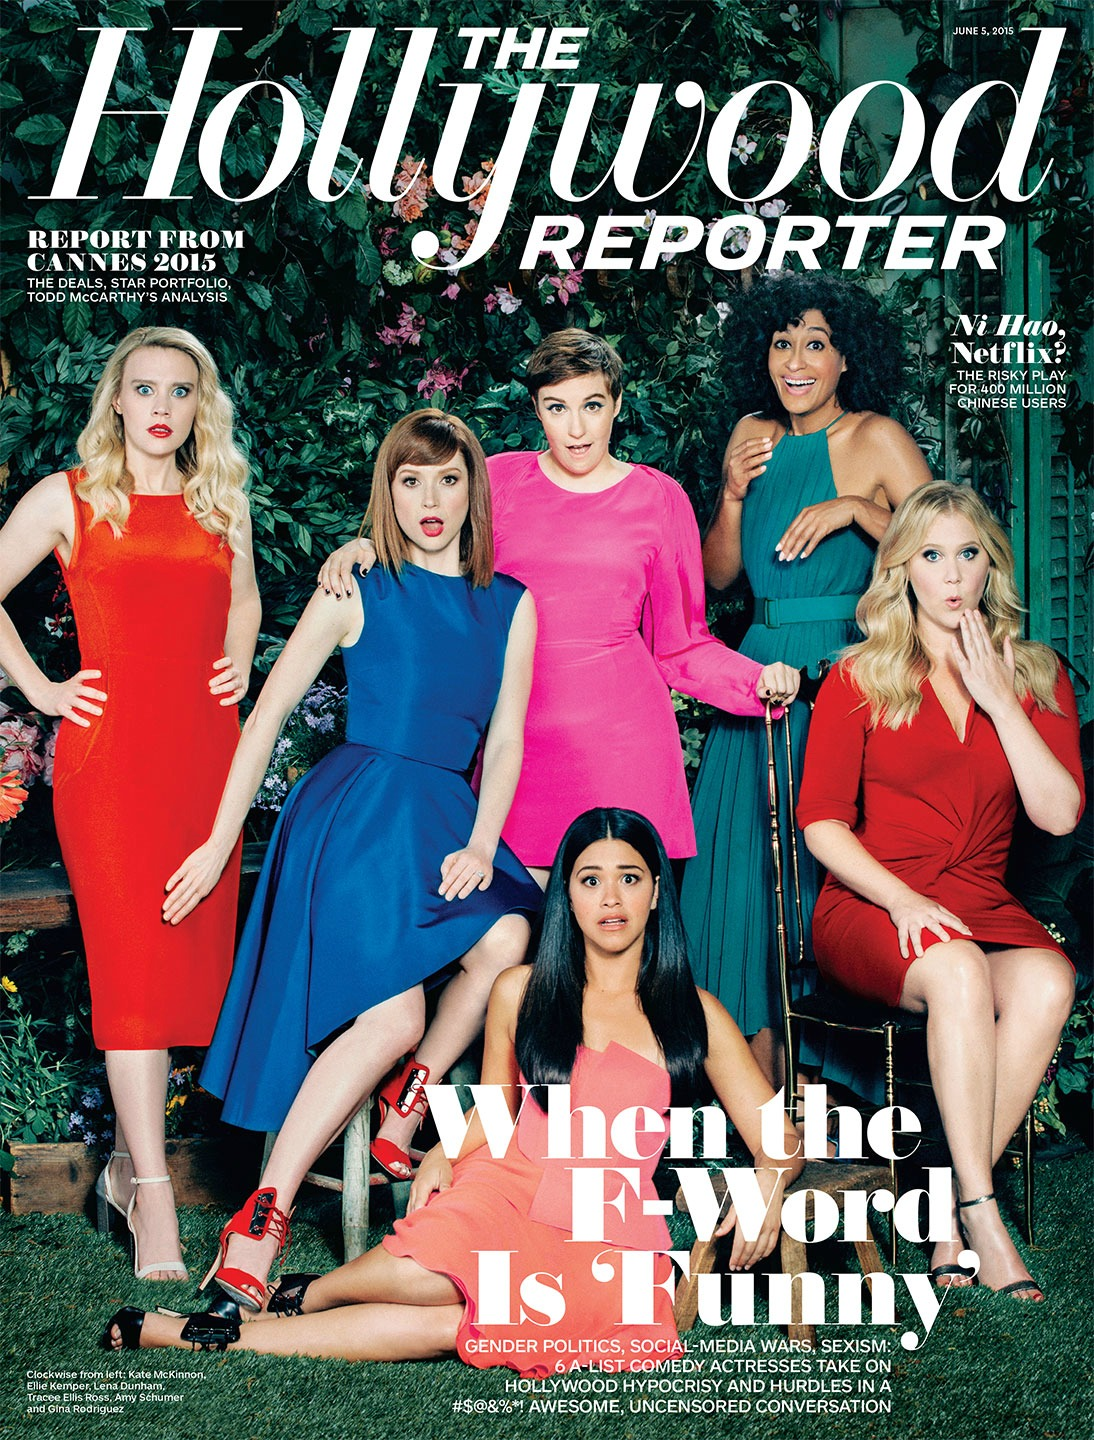 Female comedians talk sexism with The Hollywood Reporter